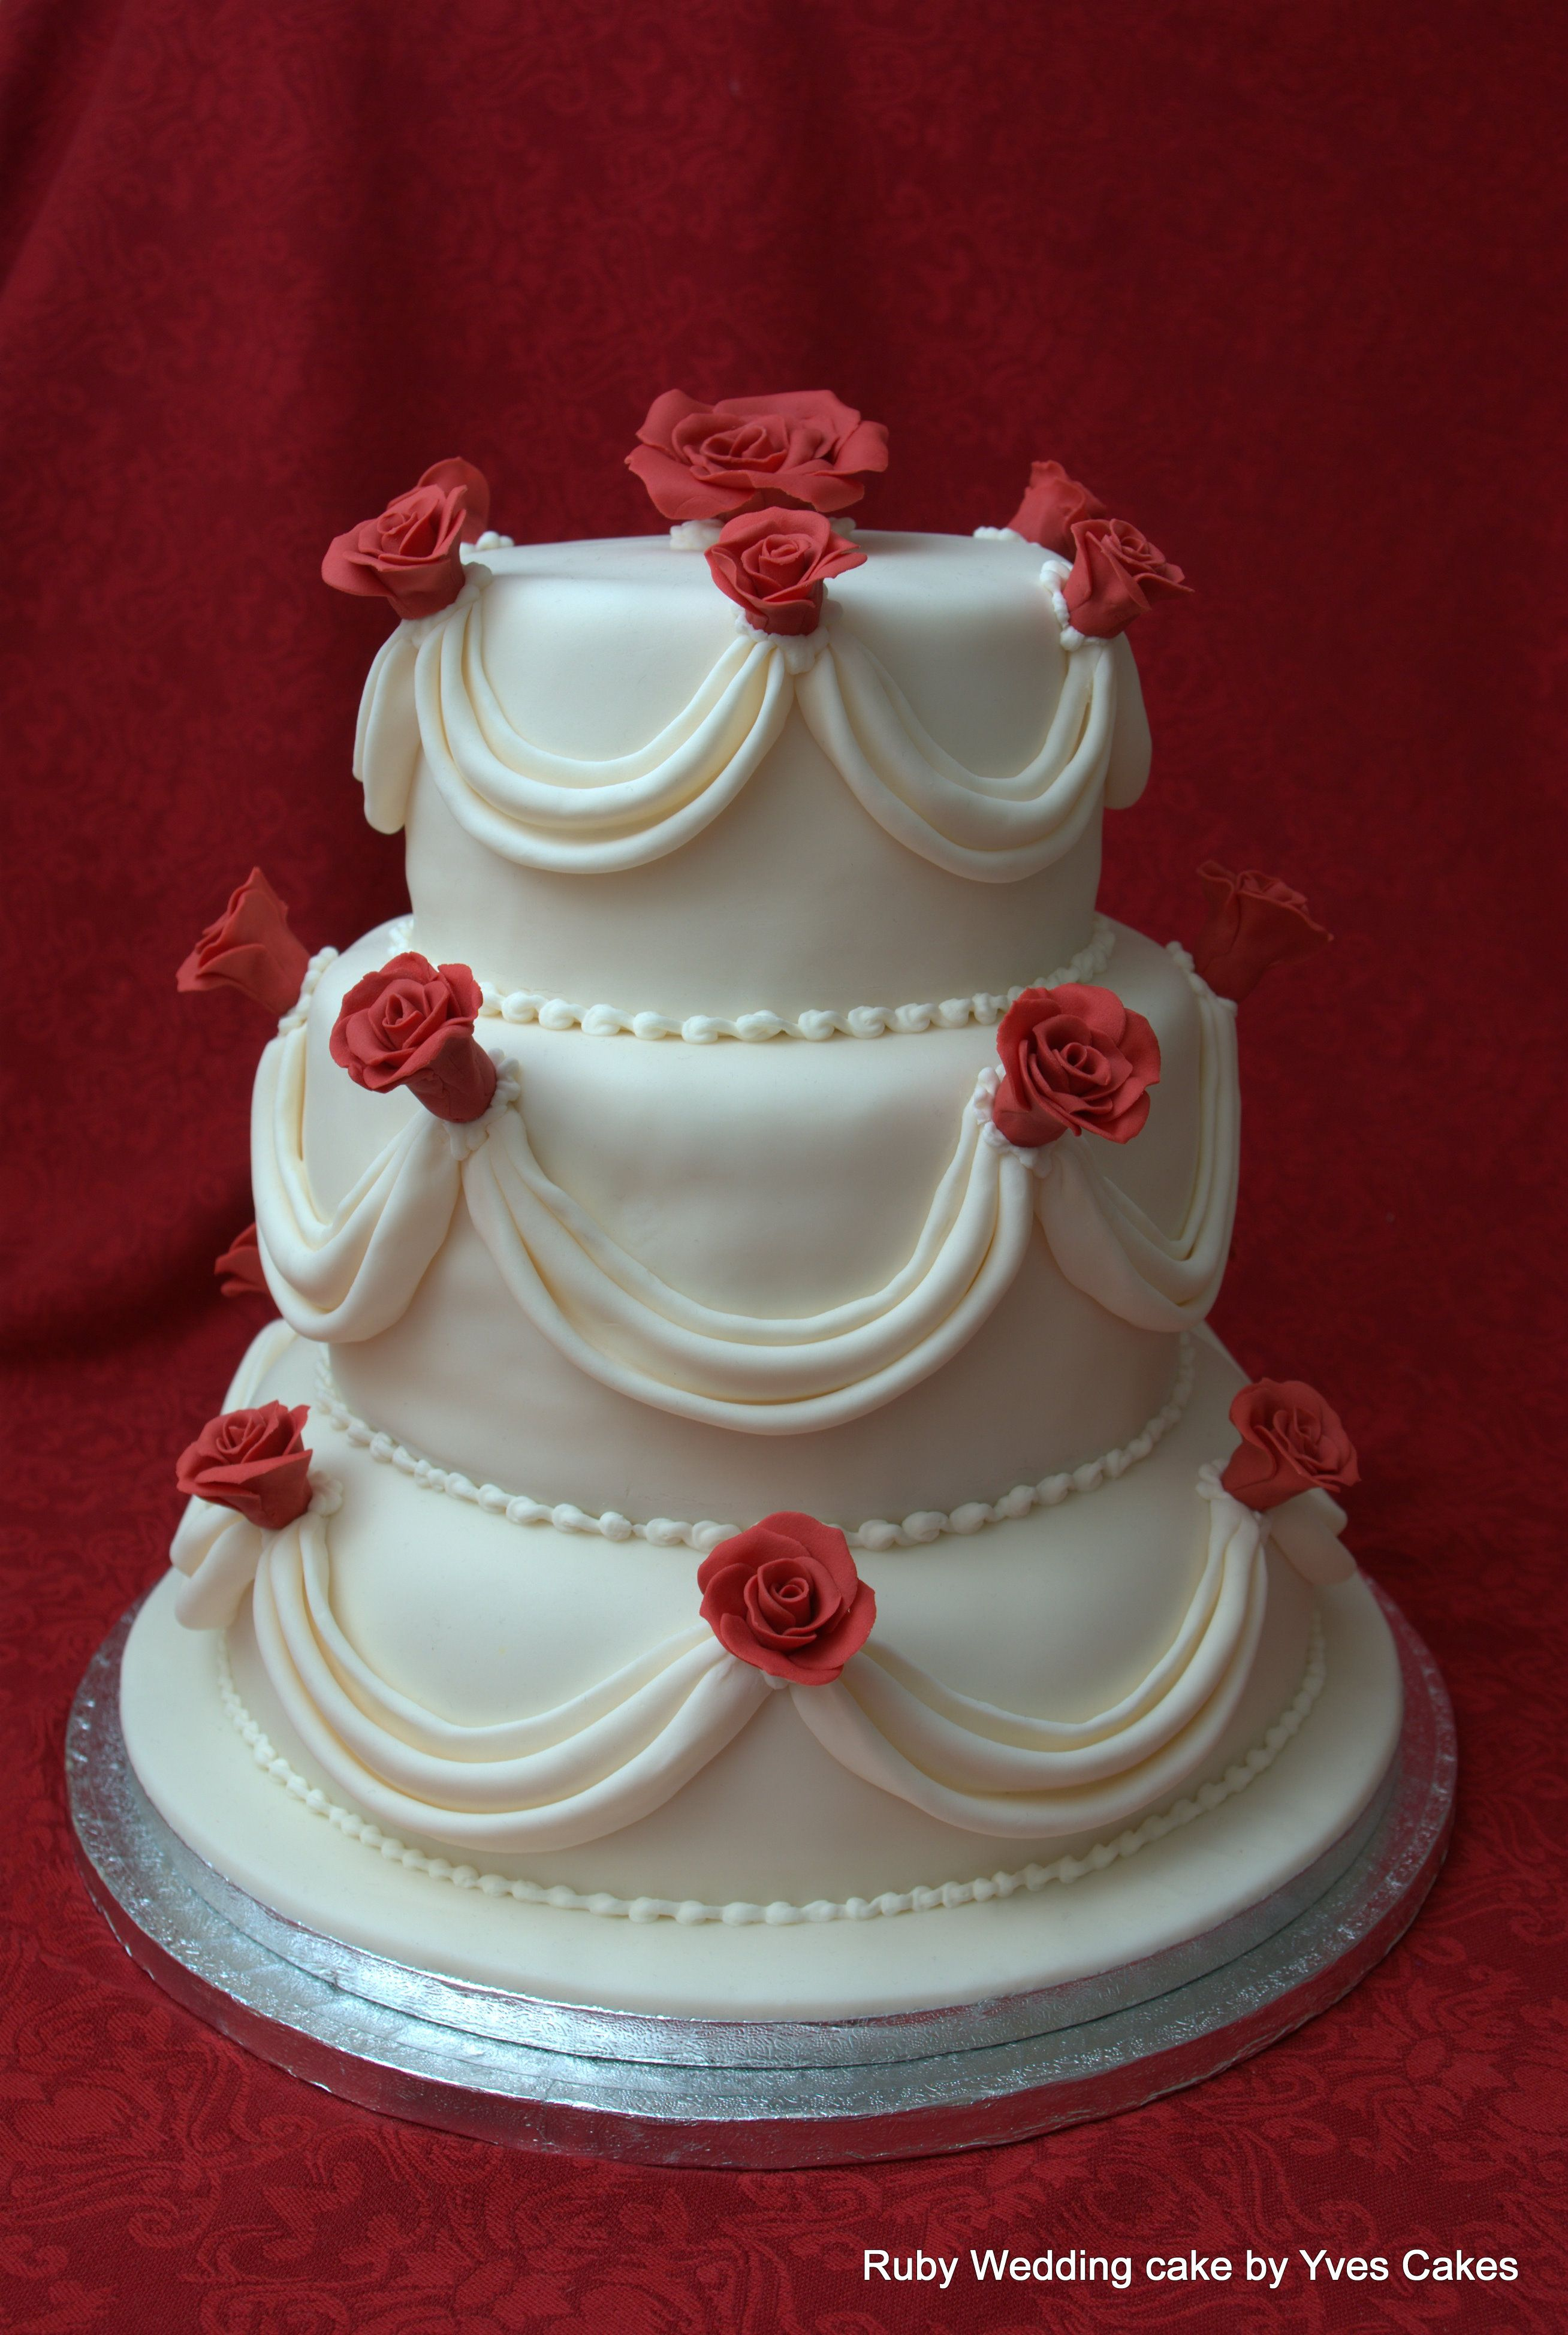 Cake Ideas For Ruby Wedding : Ruby Wedding cake 40th Anniversary Party Ideas Pinterest